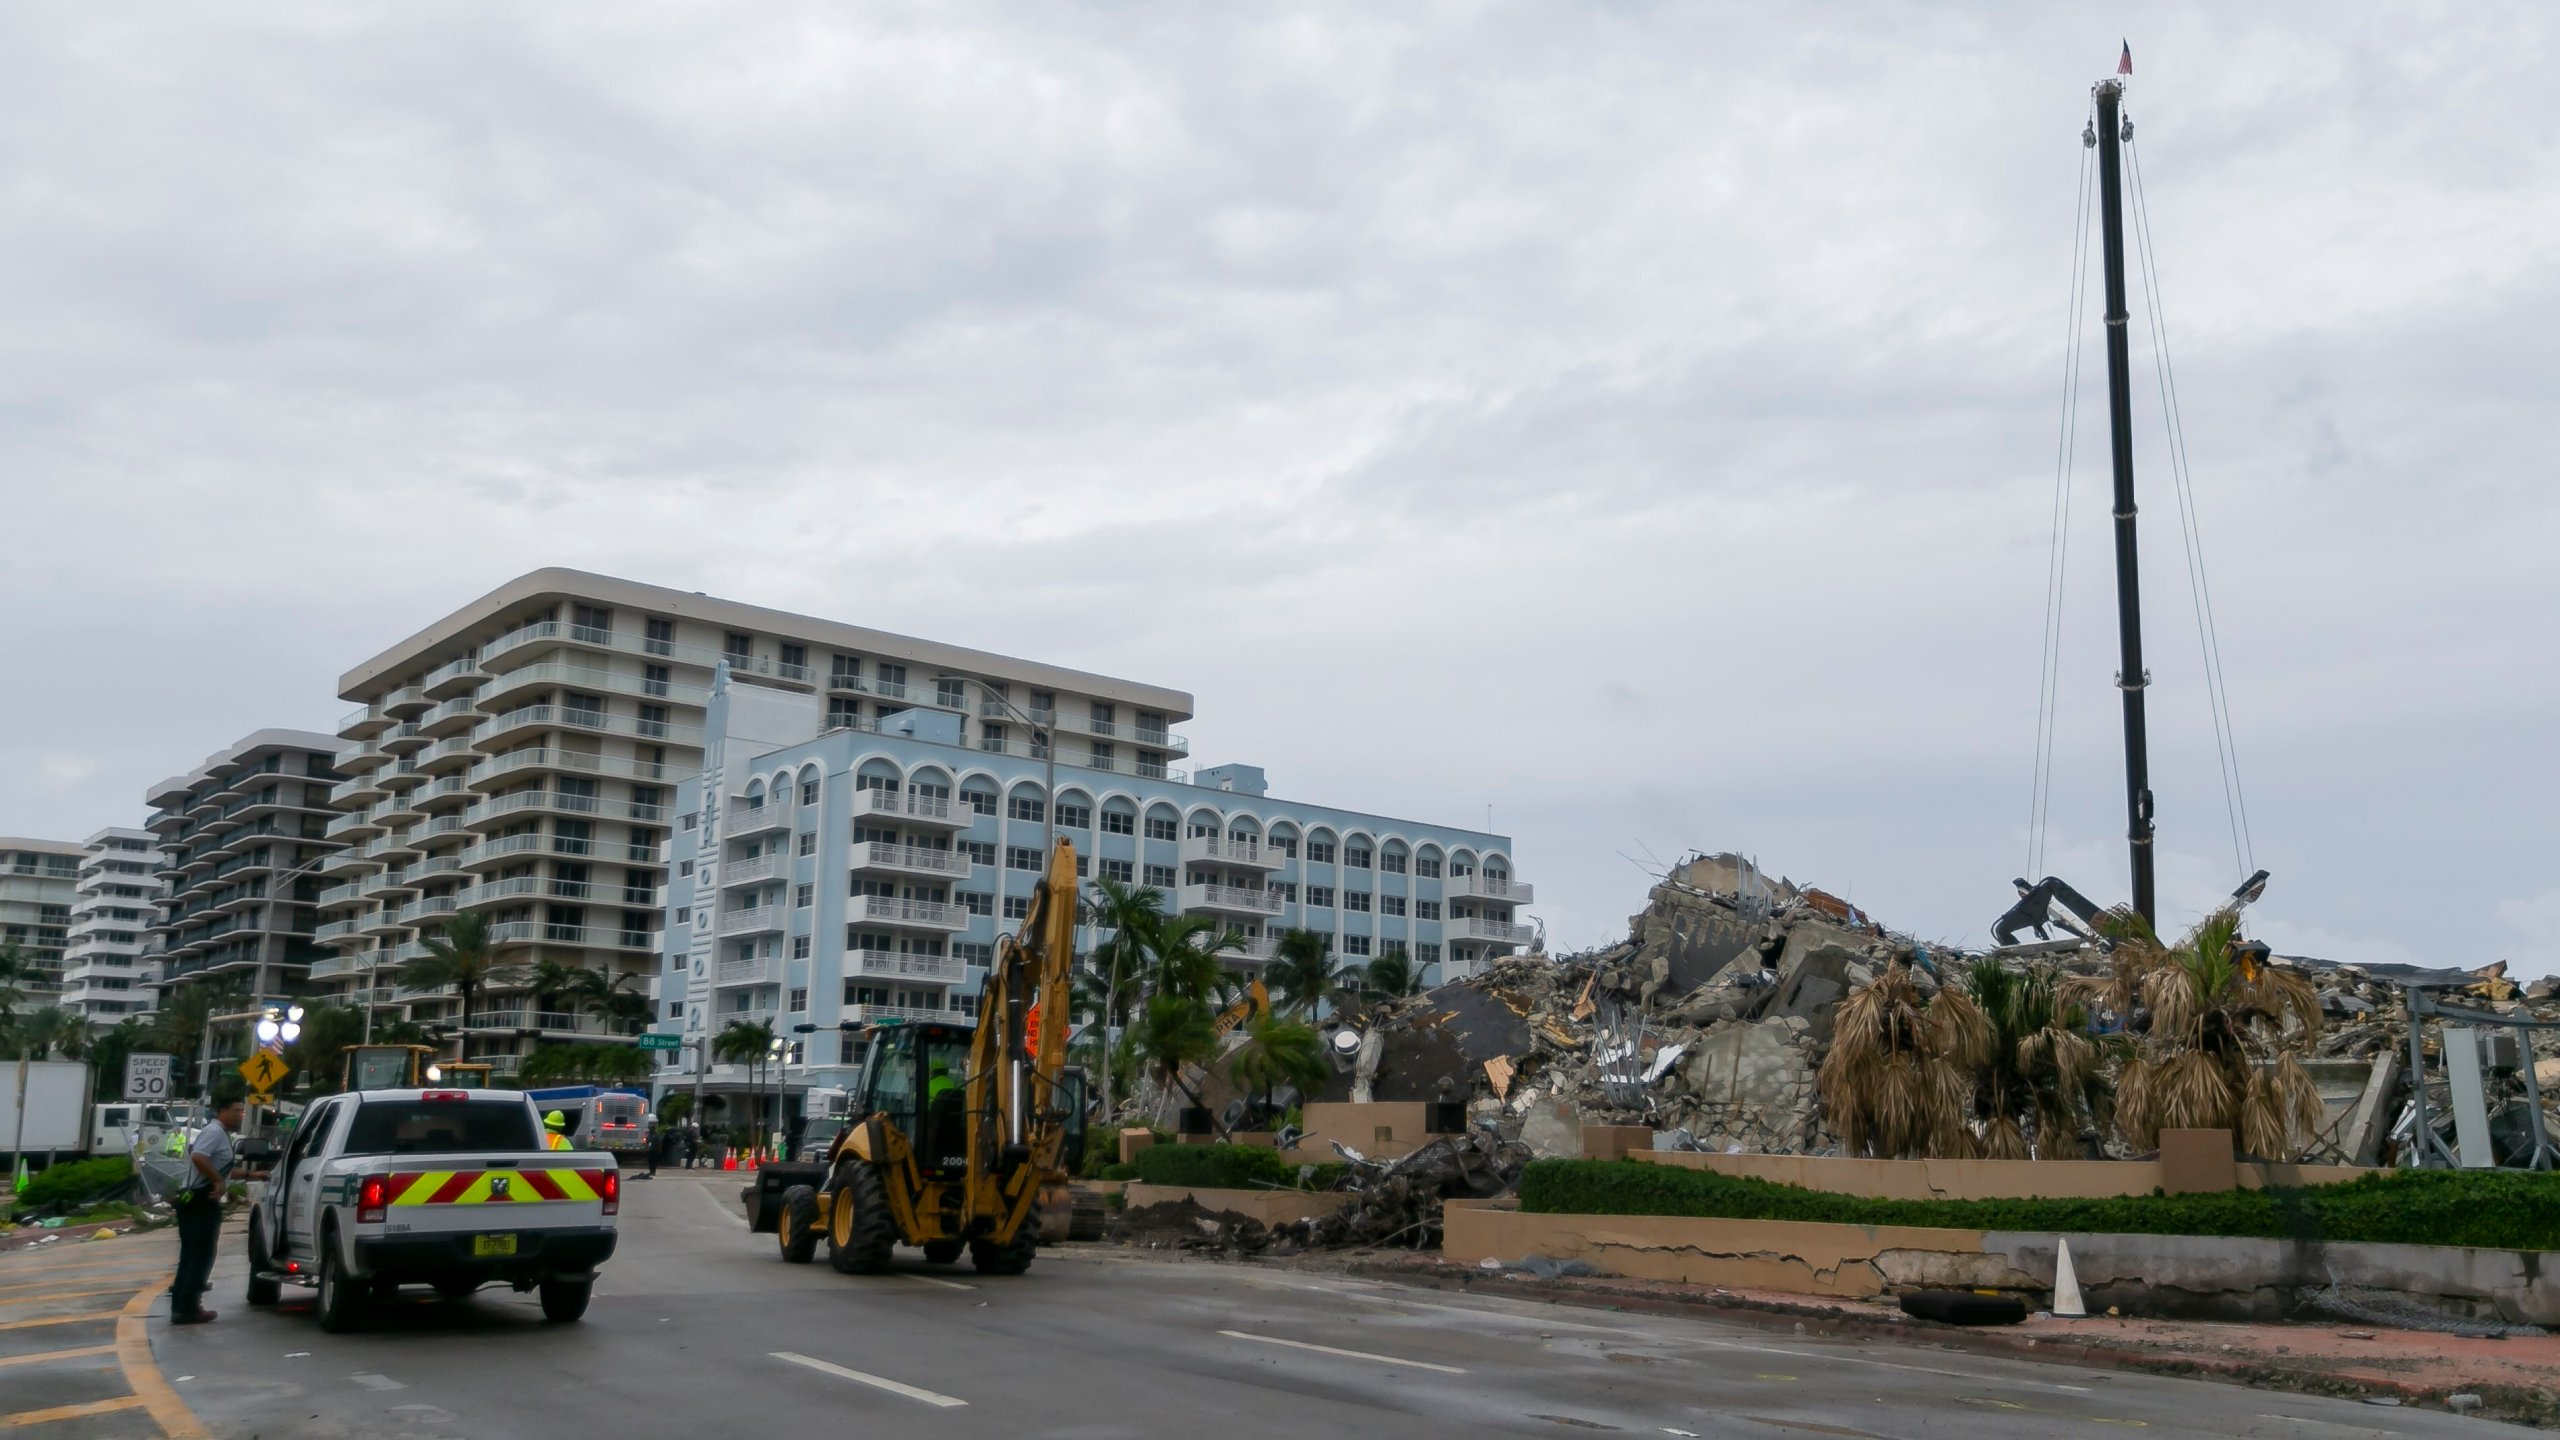 Rubble and debris of the Champlain Towers South condo